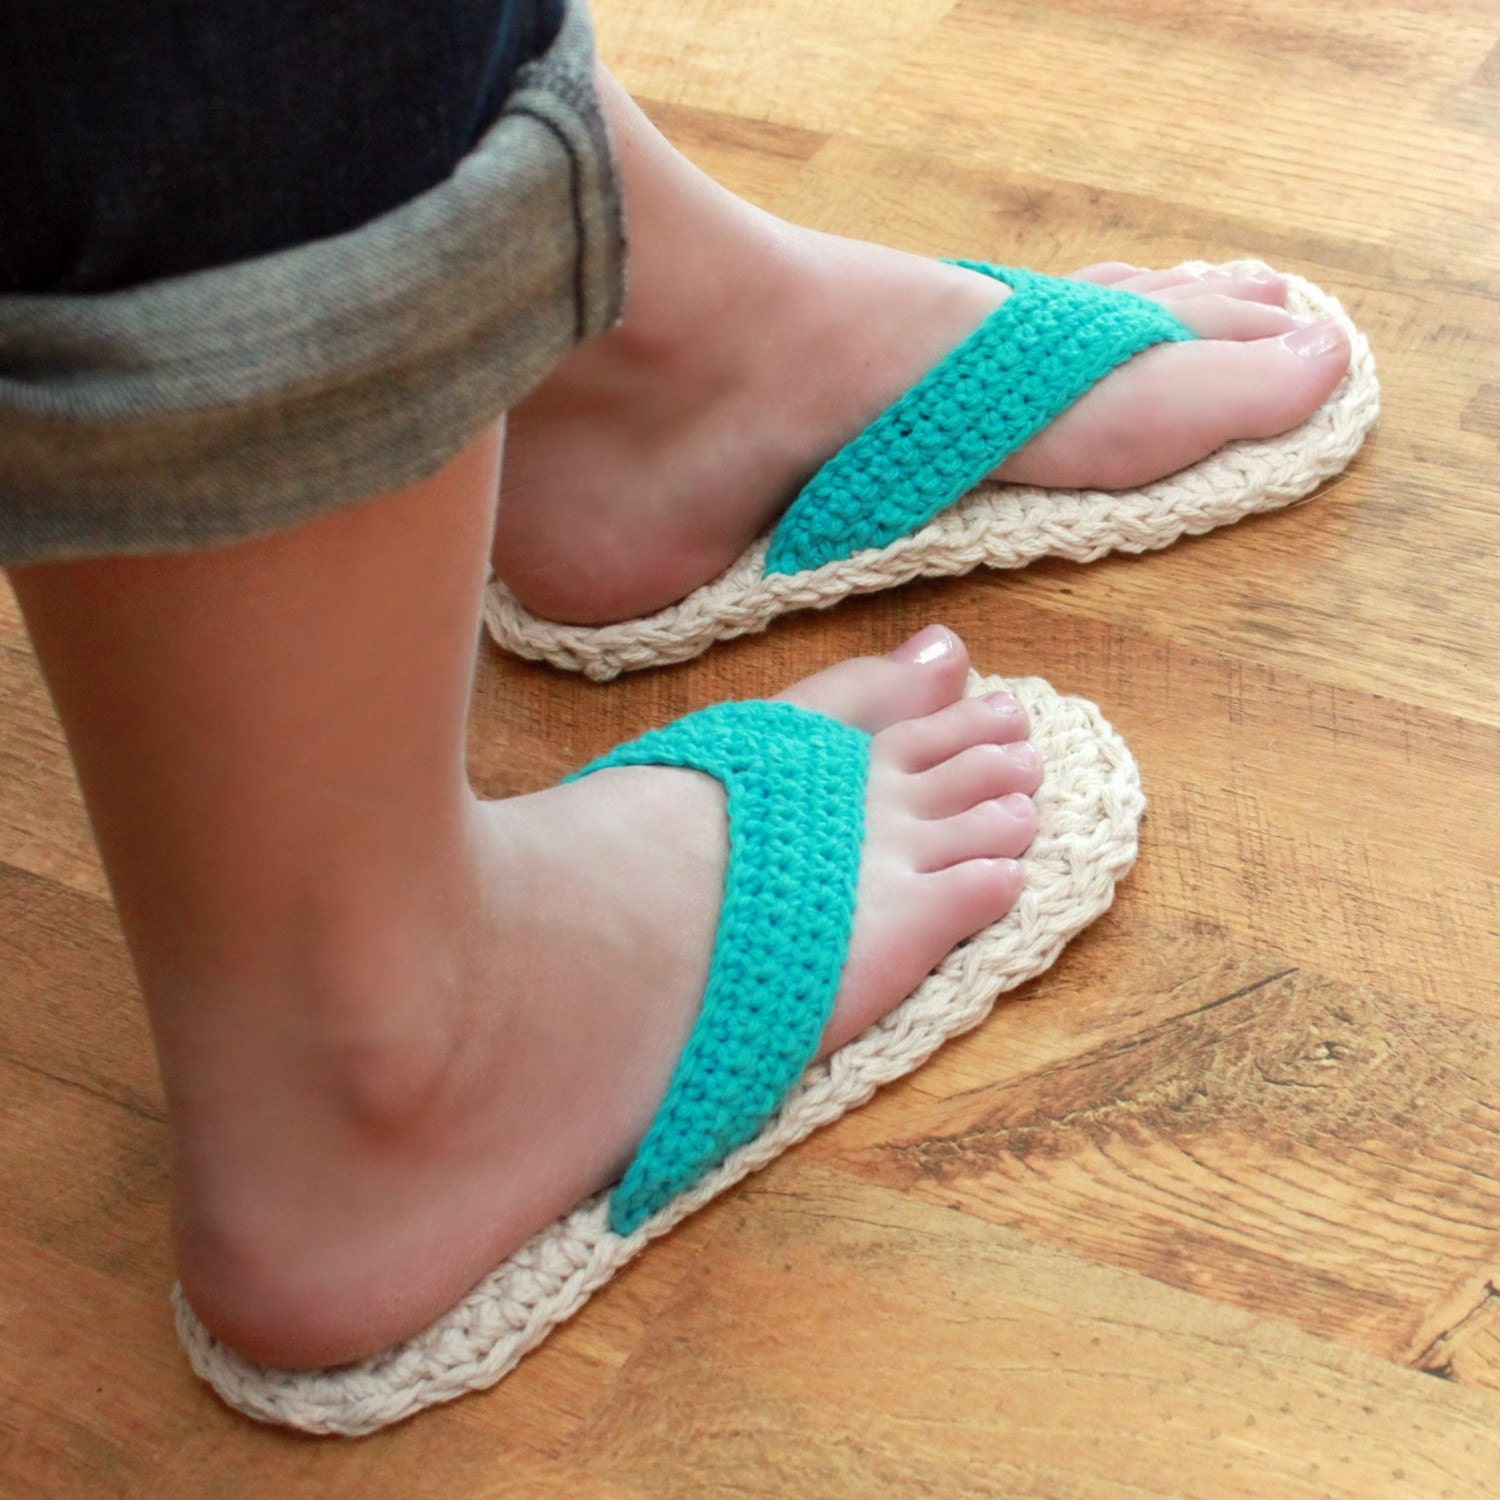 Crochet Patterns Using Flip Flops : Crochet Slipper Pattern Adult Flip Flops Child/Adult sizes